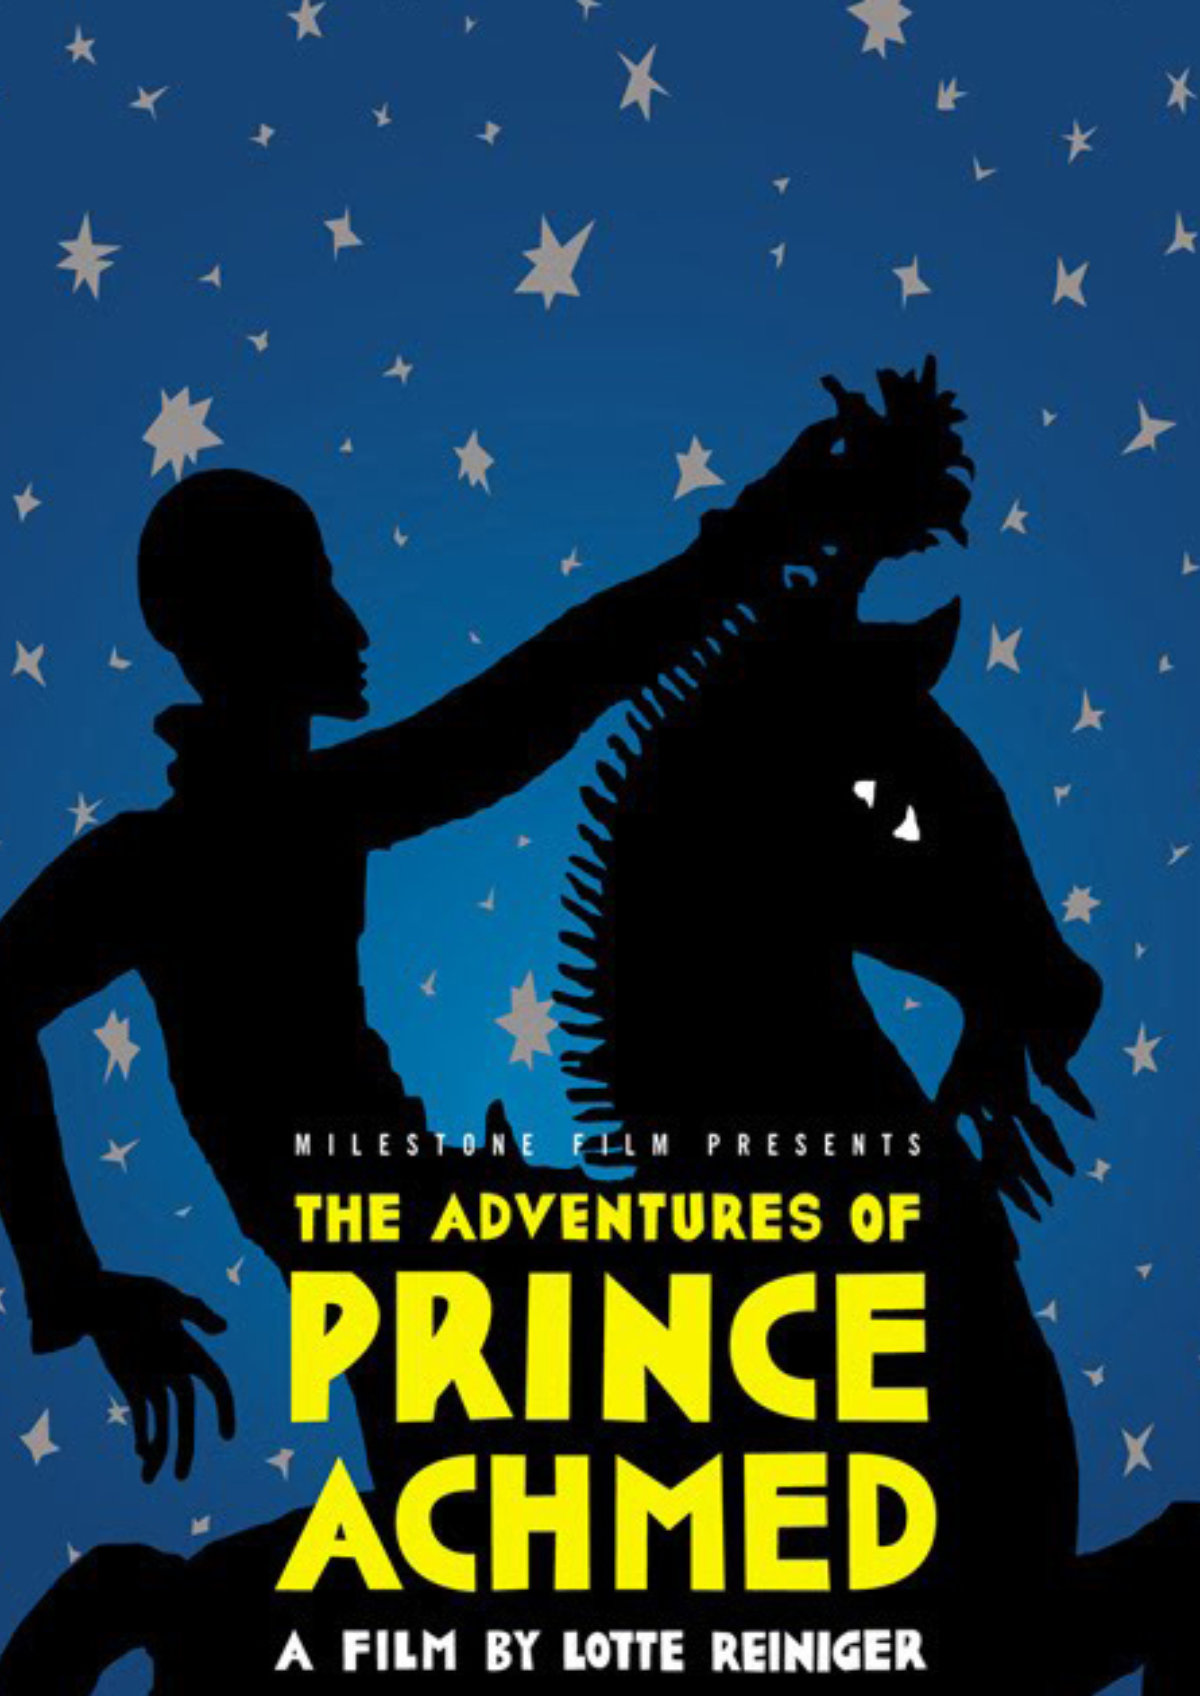 'The Adventures Of Prince Achmed' movie poster